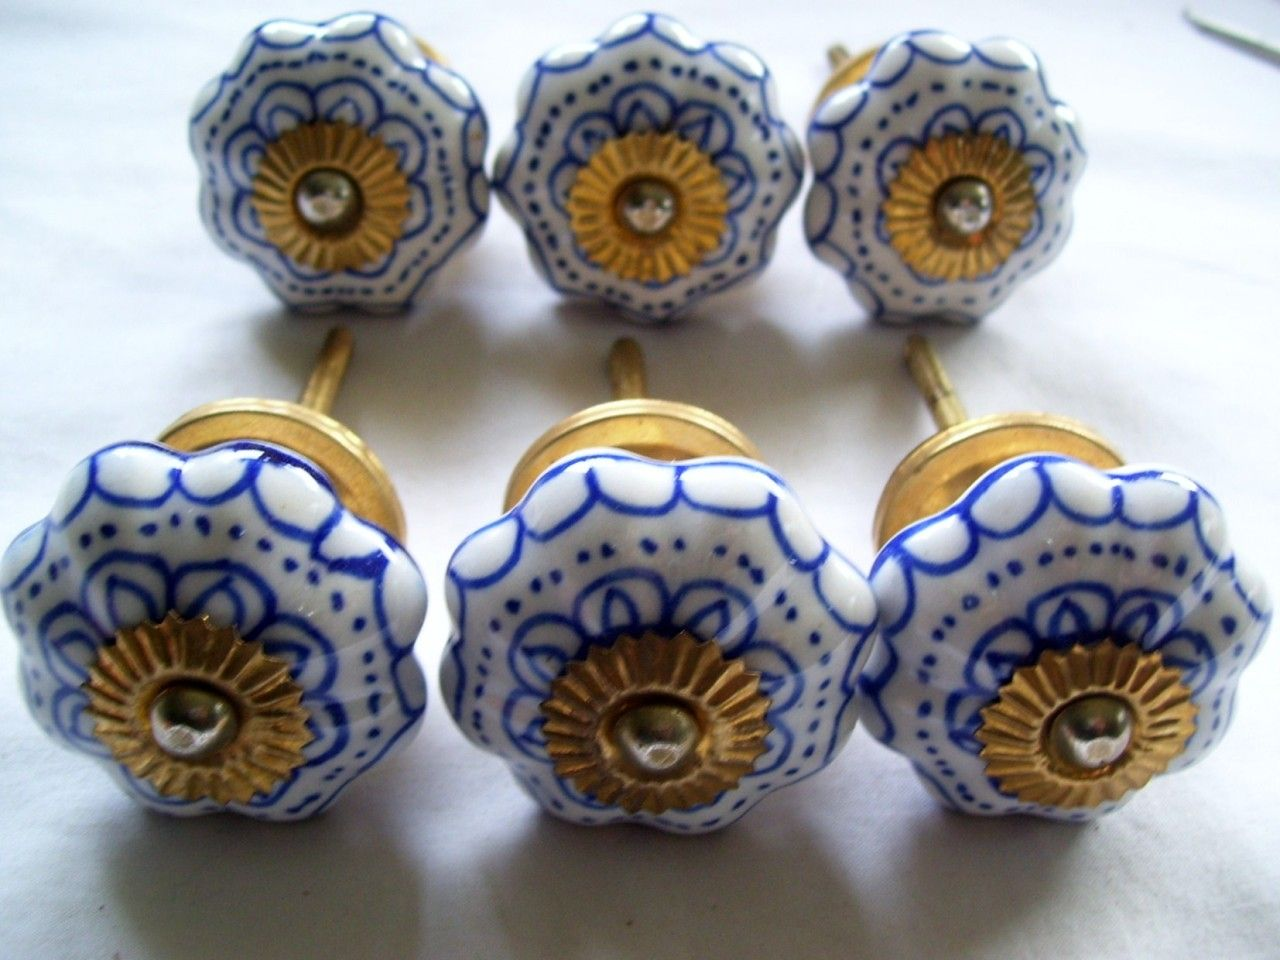 6 X 4cm Blue White Ceramic Door Handles S Item Condition New Quany More Than 10 Available 18 Sold Au 23 99 Roximately Us 24 74